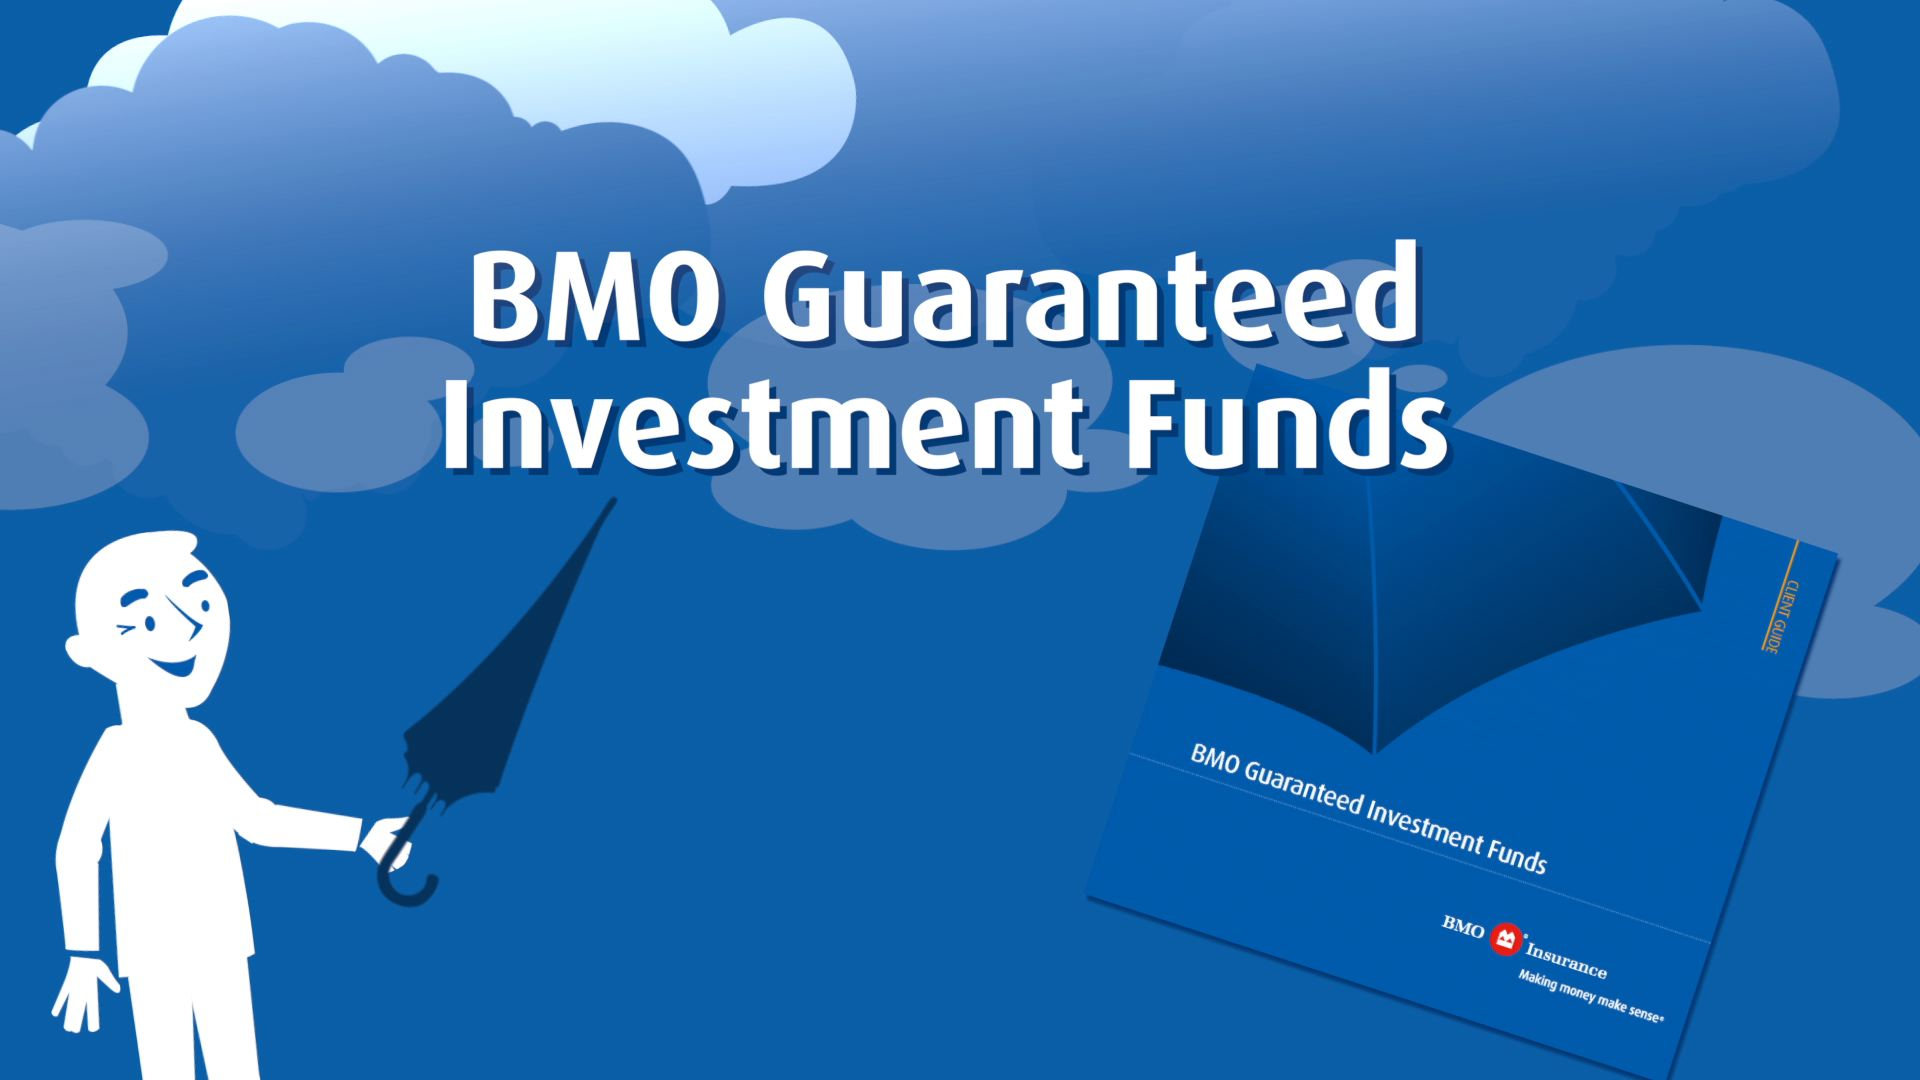 Bmo Term Life Insurance Quote Guaranteed Investment Funds  Retirement Savings  Bmo Insurance